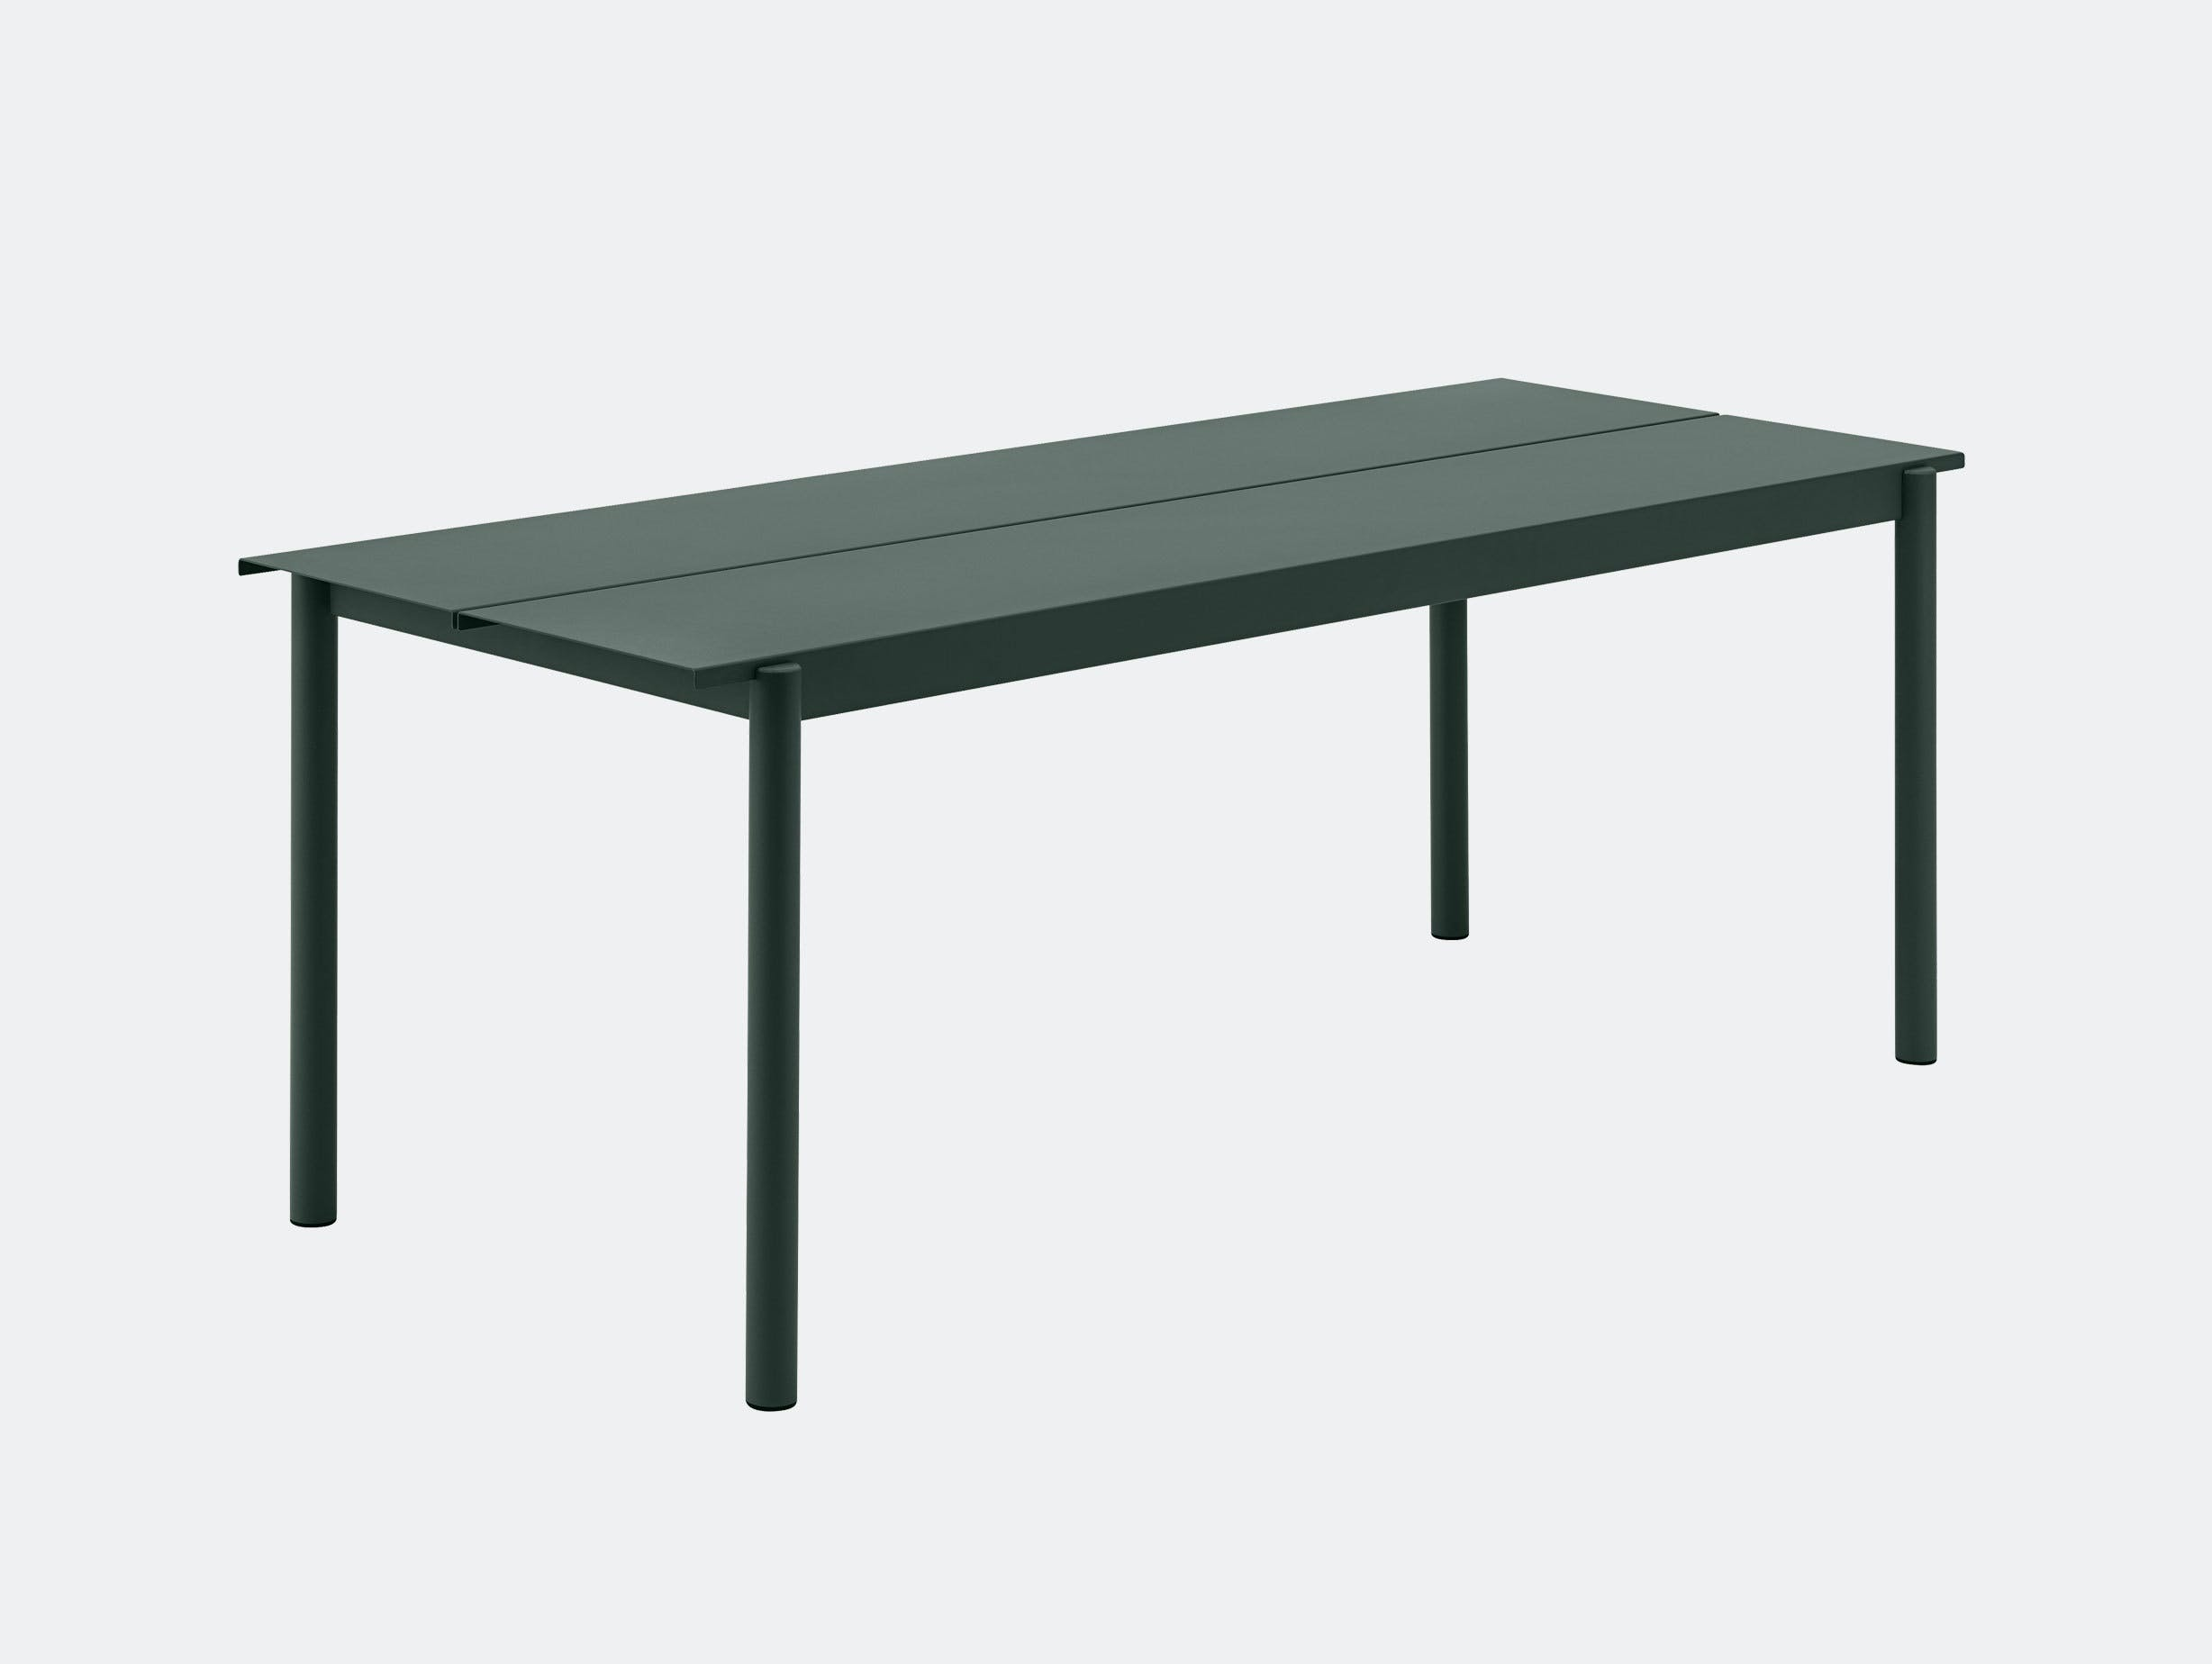 Muuto Linear Steel Outdoor Table L 200Cm Dark Green Thomas Bentzen